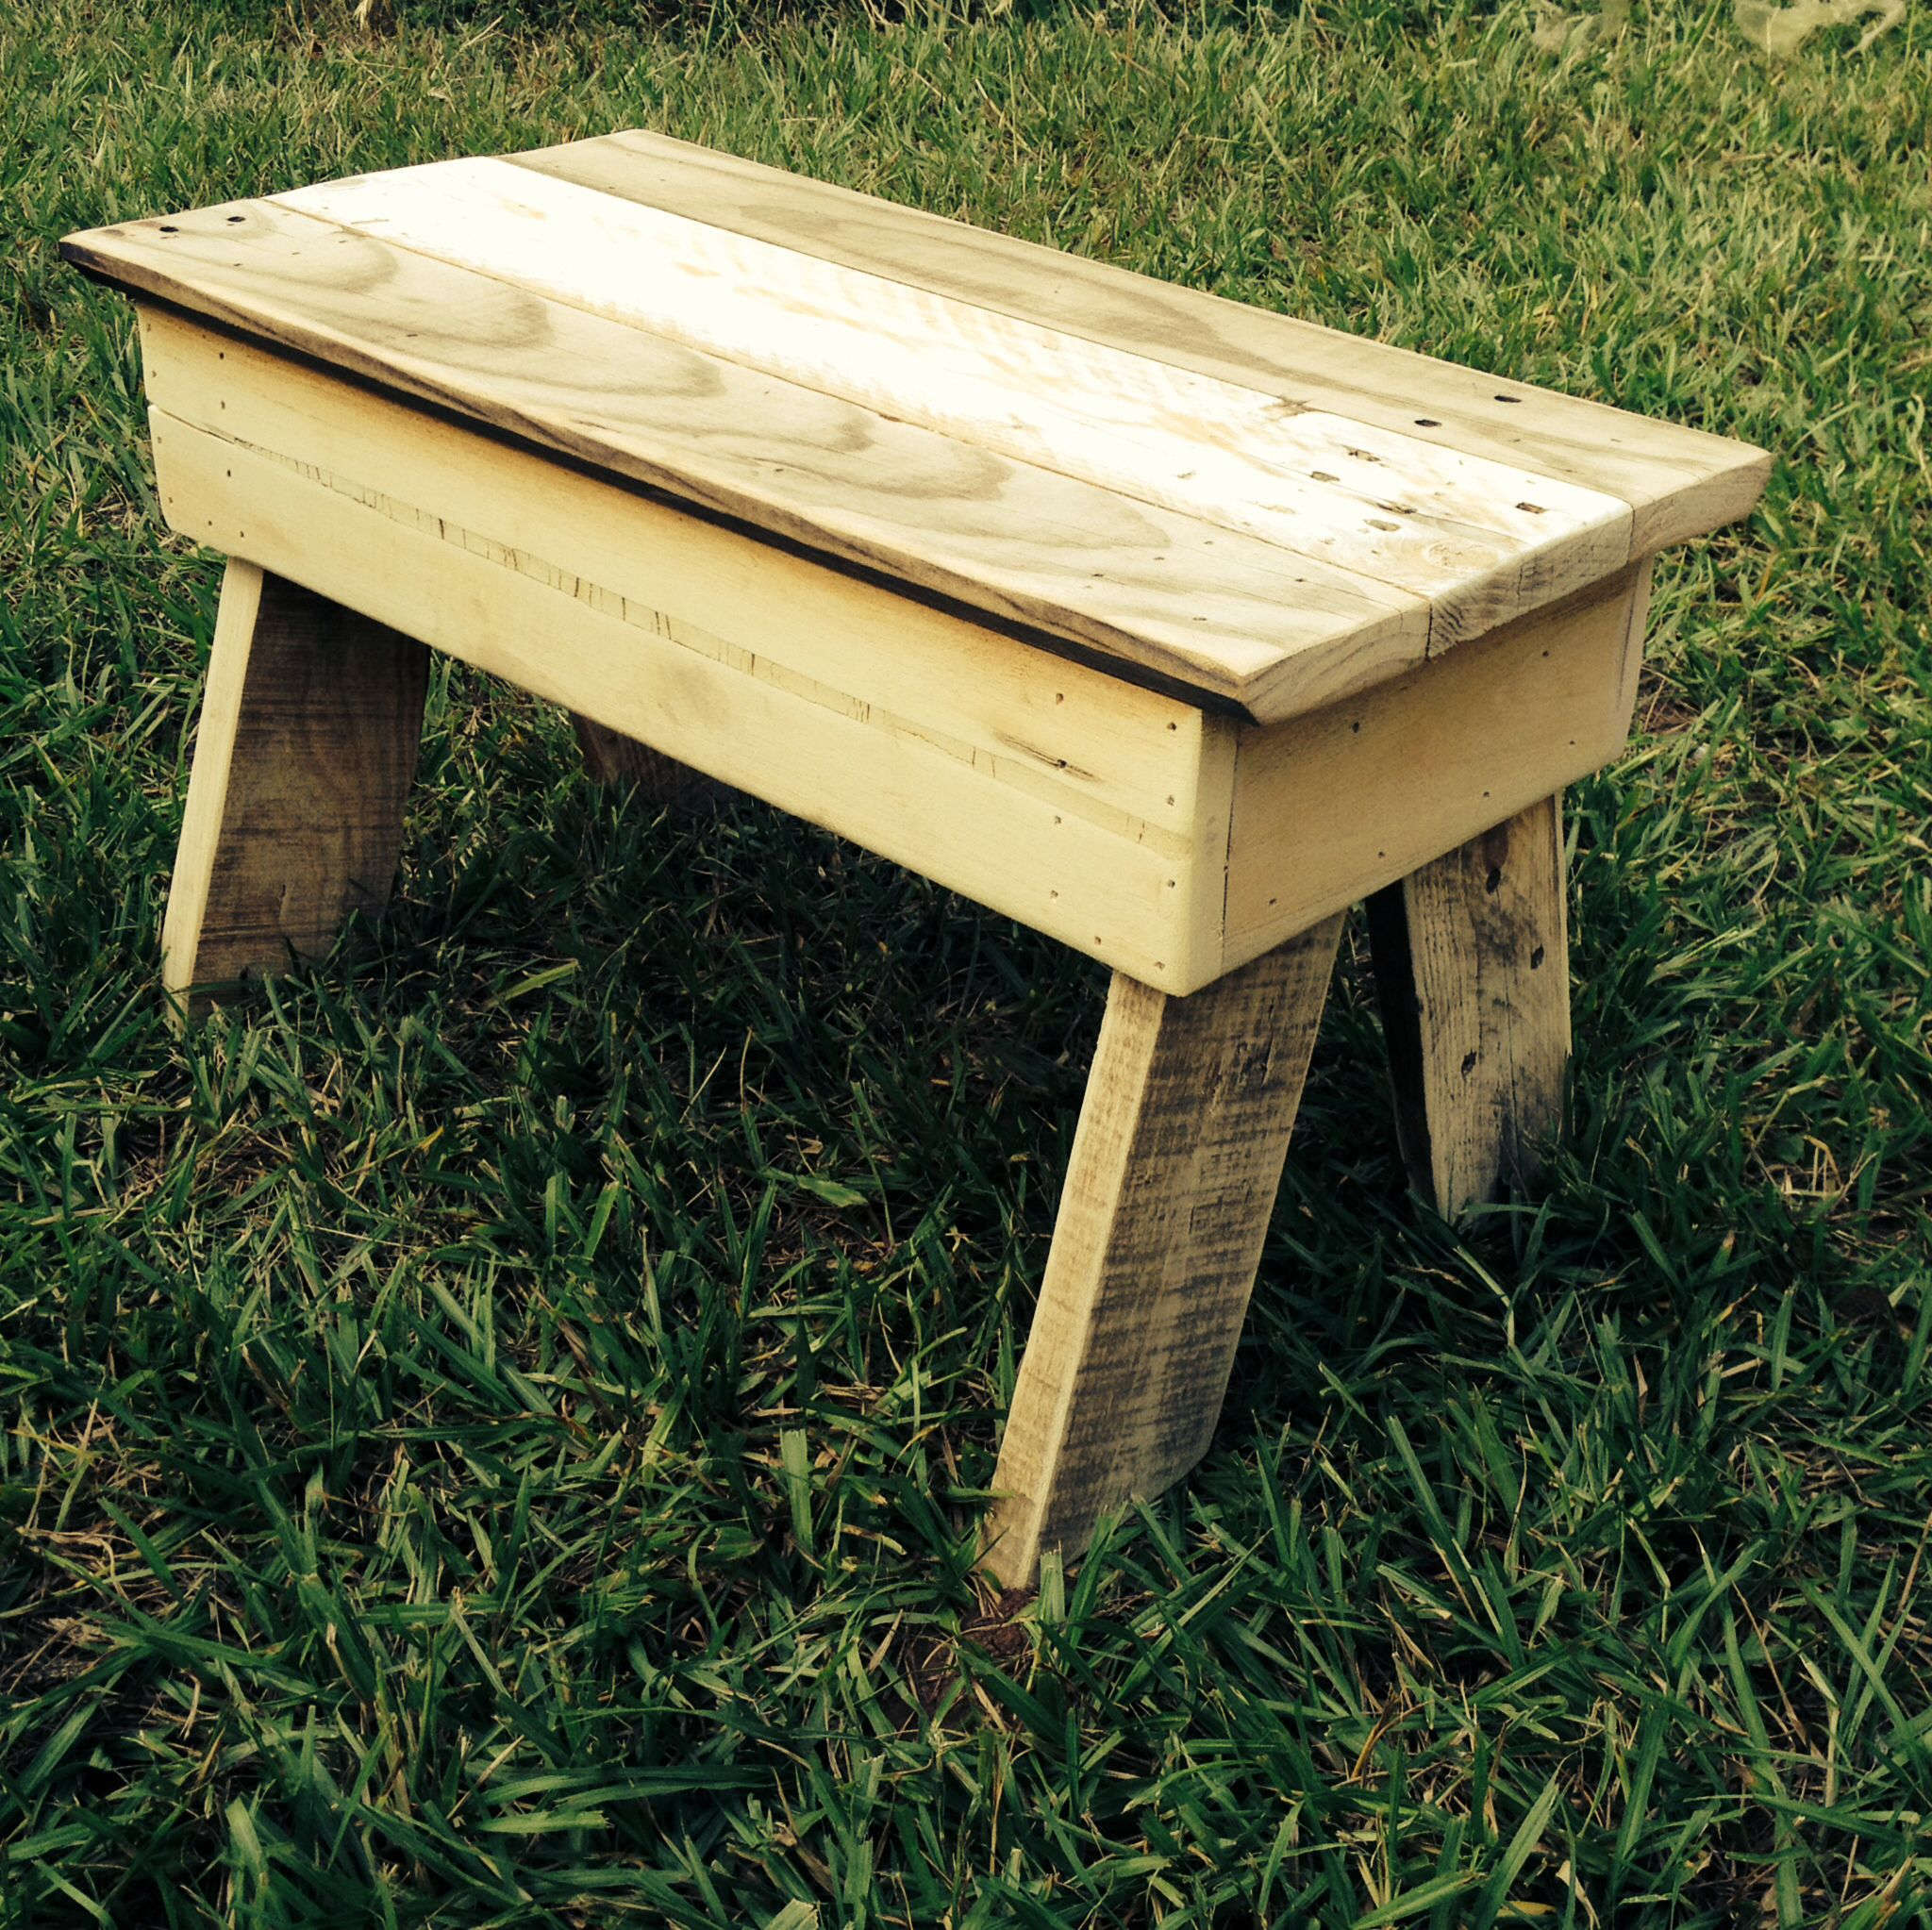 Diy Pallet Furniture Small Step Up Stool Or A Child Size